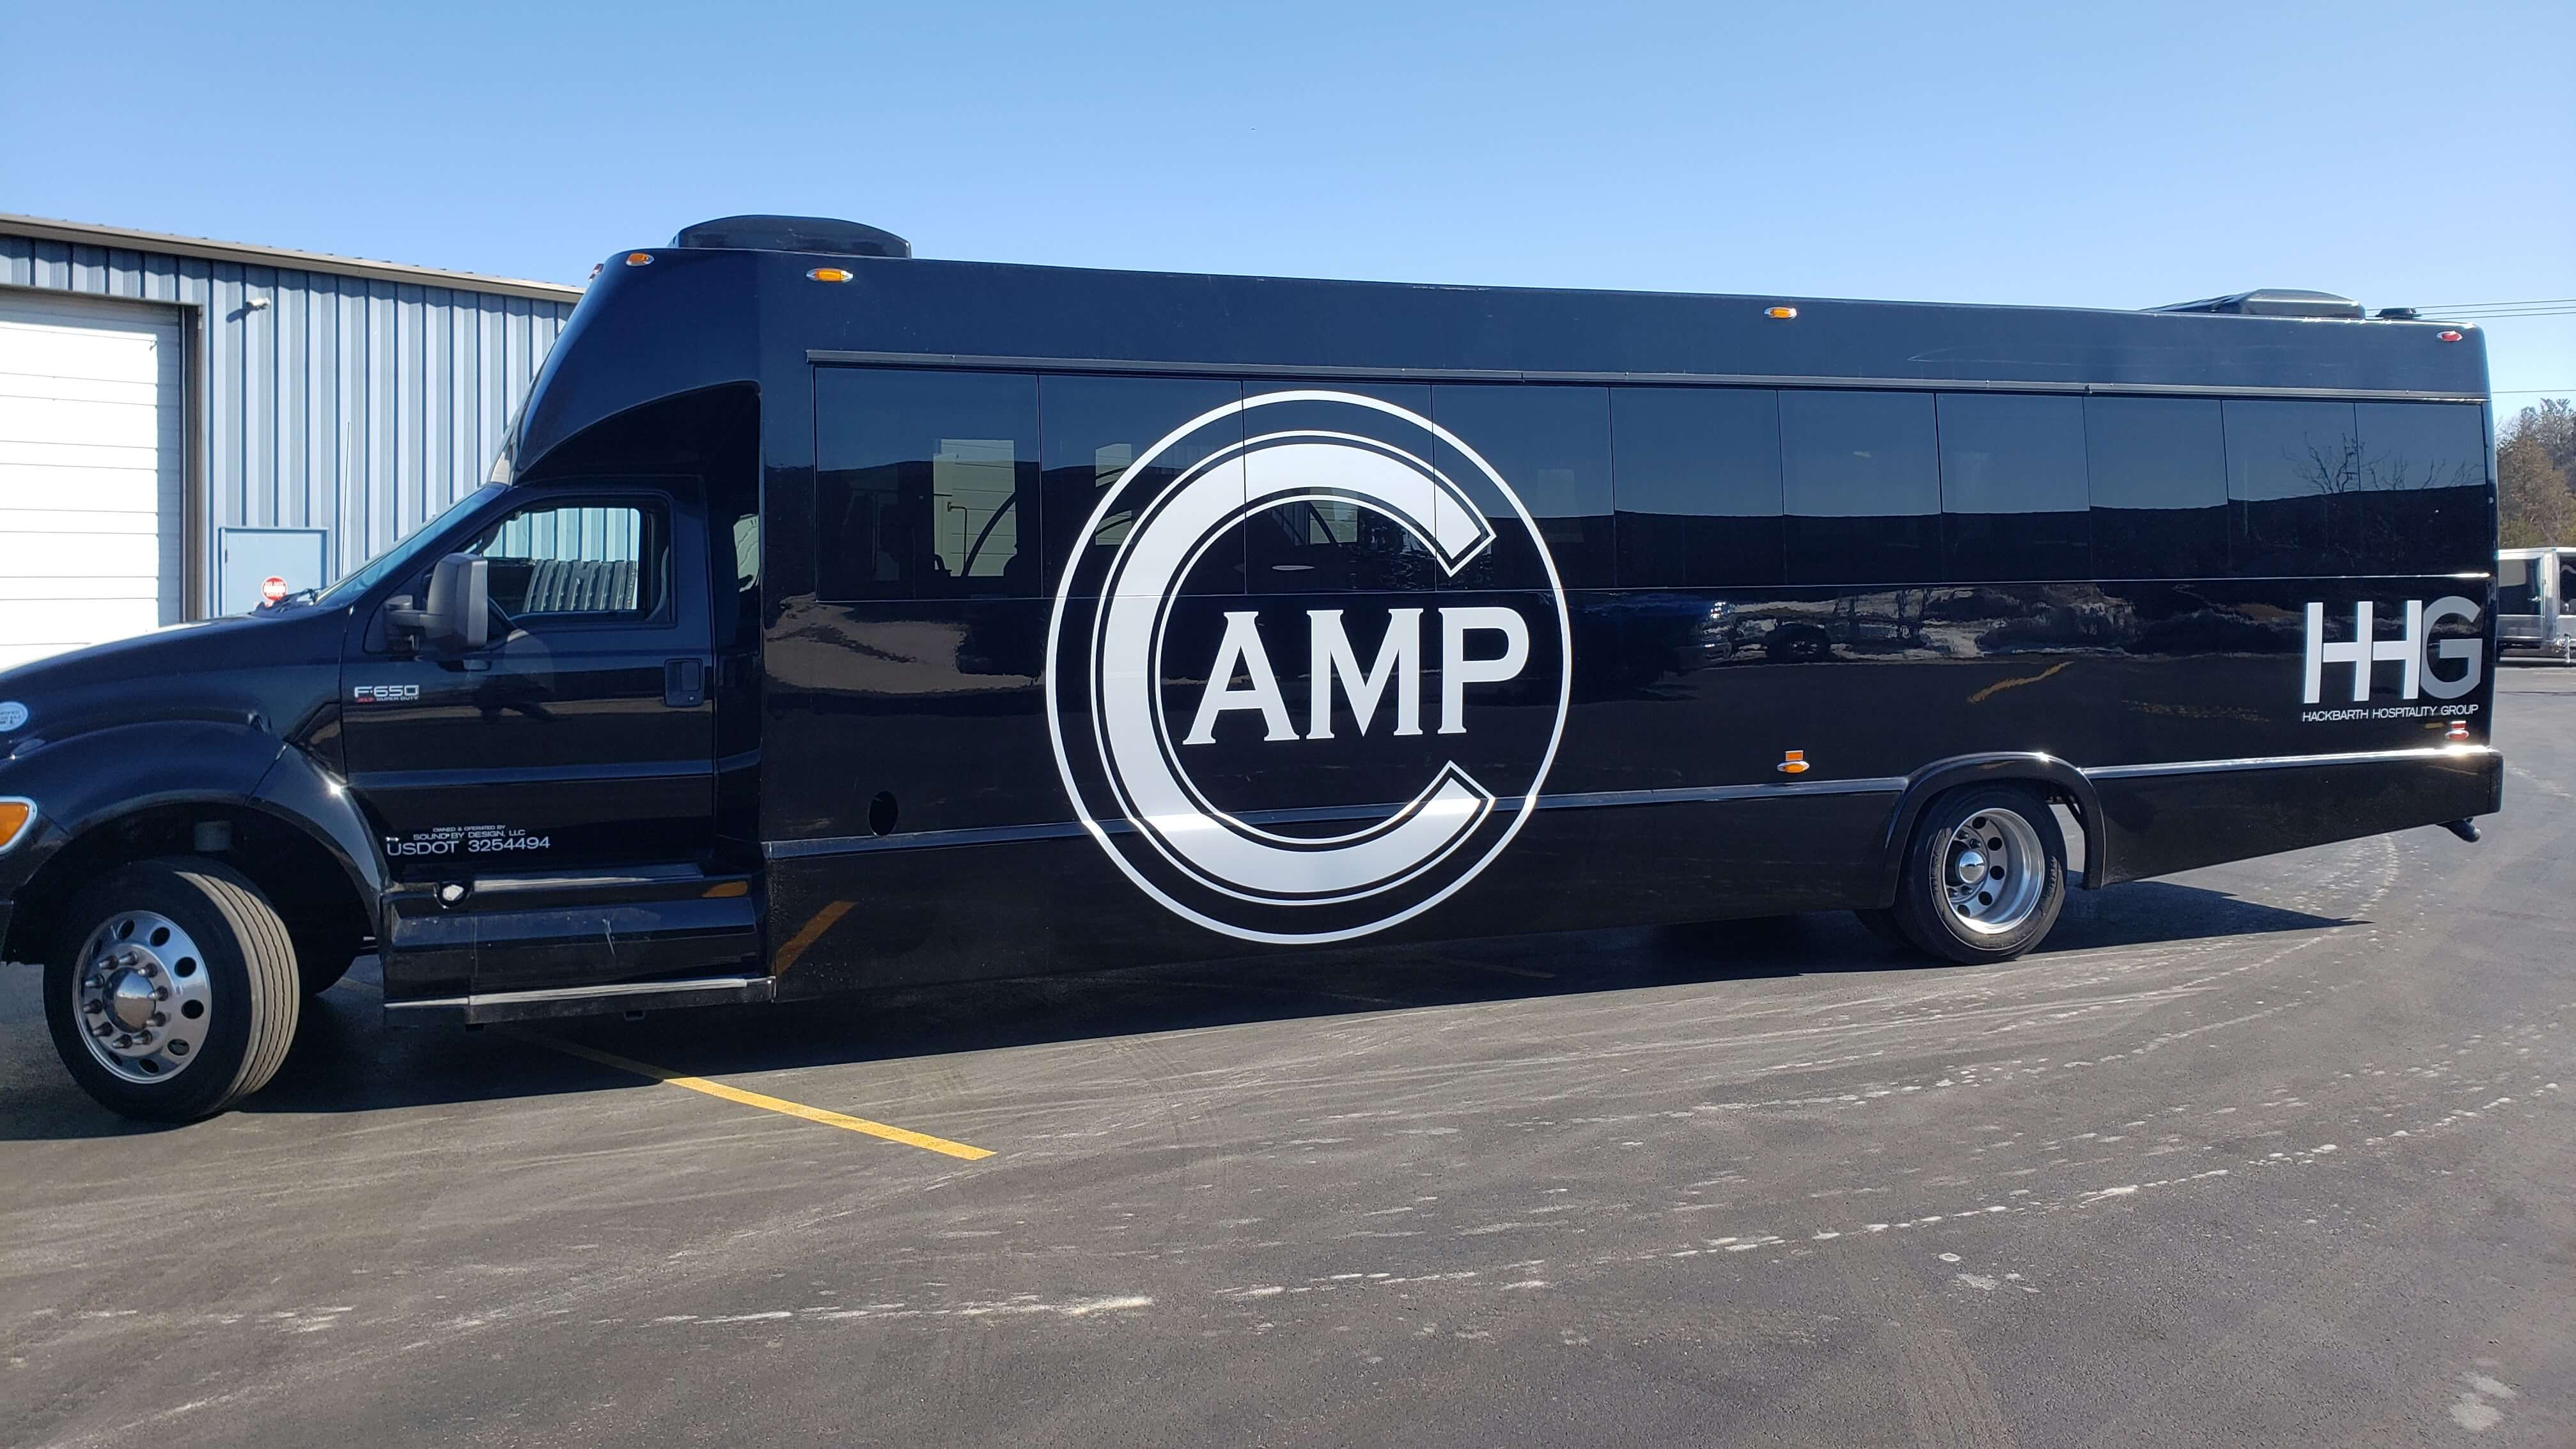 Custom Bus Wrap with full color print on the side of the vehicle designed and printed by Signs and Lines